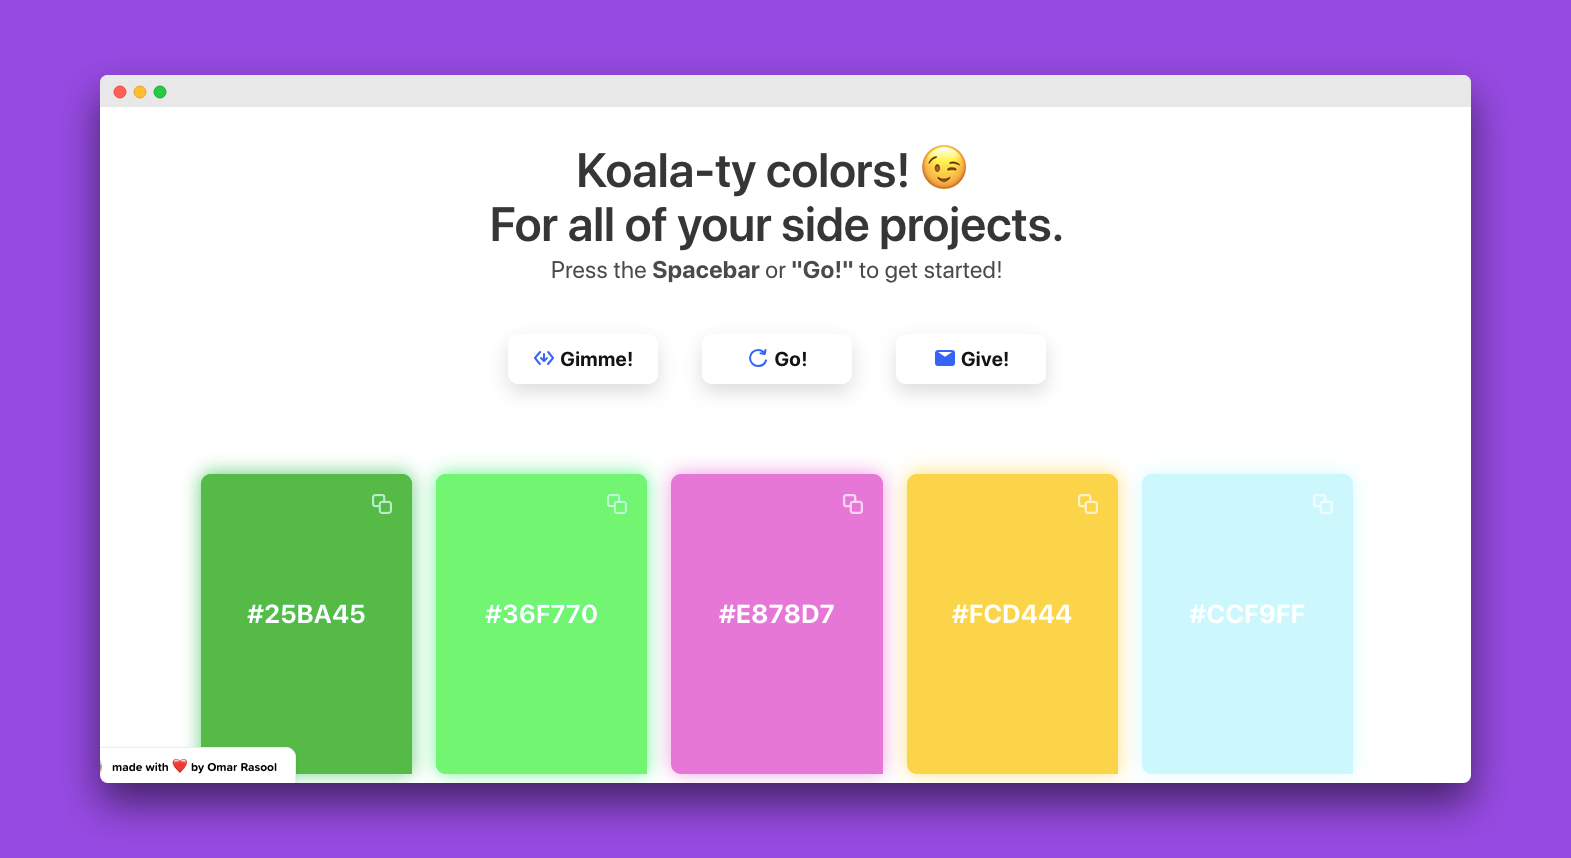 Color Koala - Koala-ty color palettes for all your side projects!